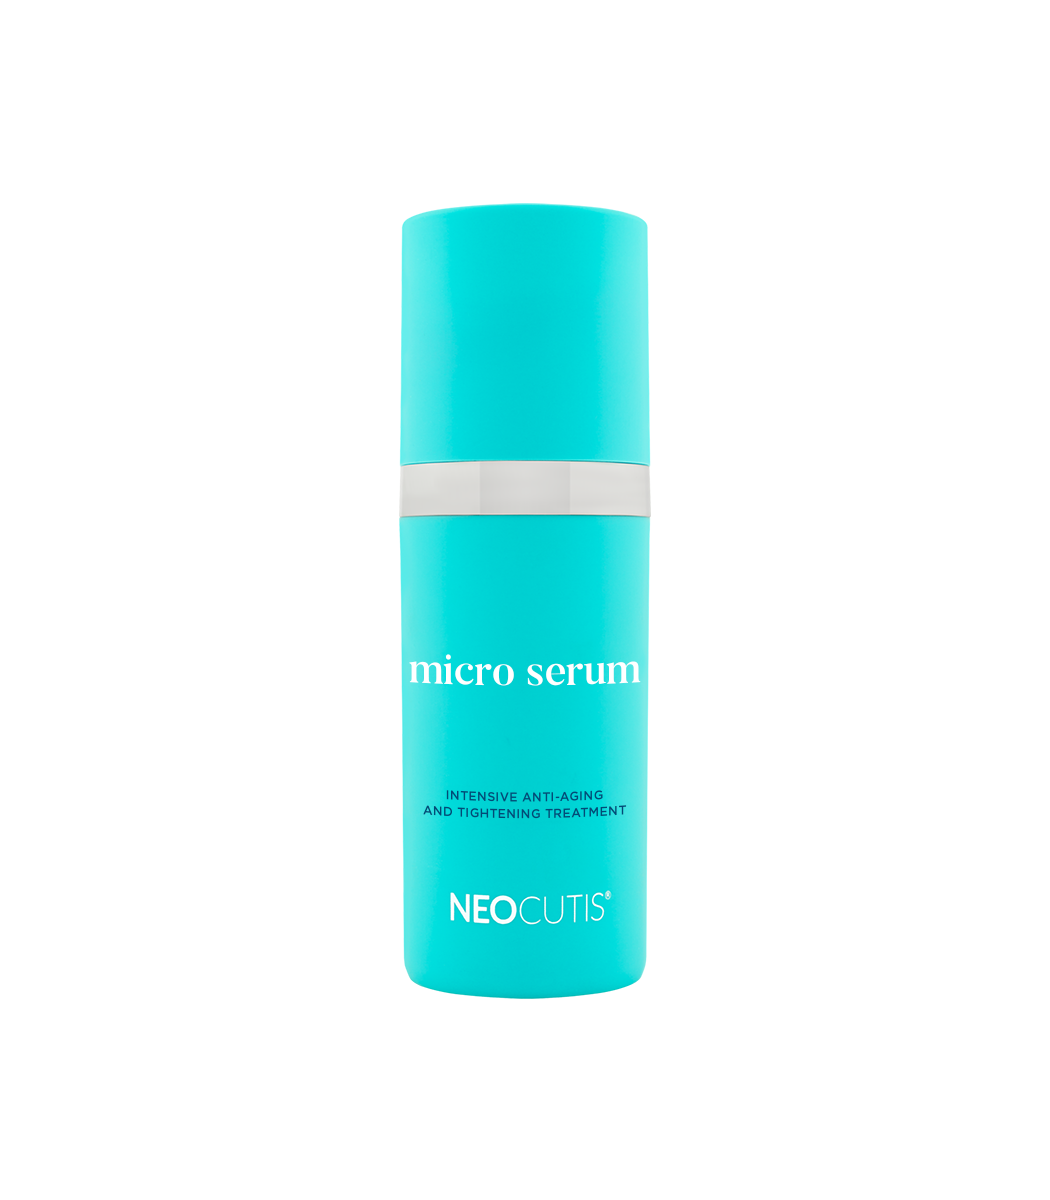 NeoCutis MICRO SERUM Intensive Anti-Aging and Tightening Treatment